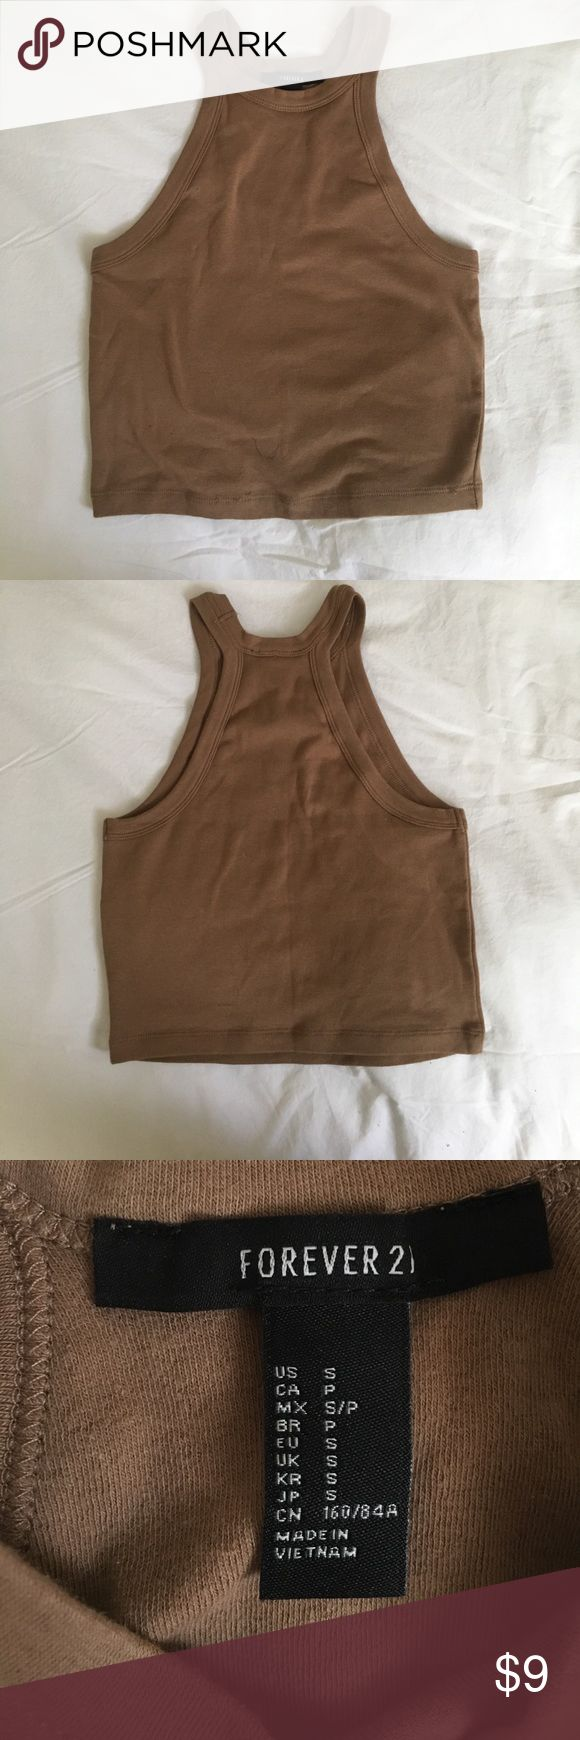 Forever21 Camel Cropped Tank - Size S Forever21 Camel Cropped Tank - Size S Never worn. 95%cotton, 5% elastane. Perfect for summer! Forever 21 Tops Crop Tops